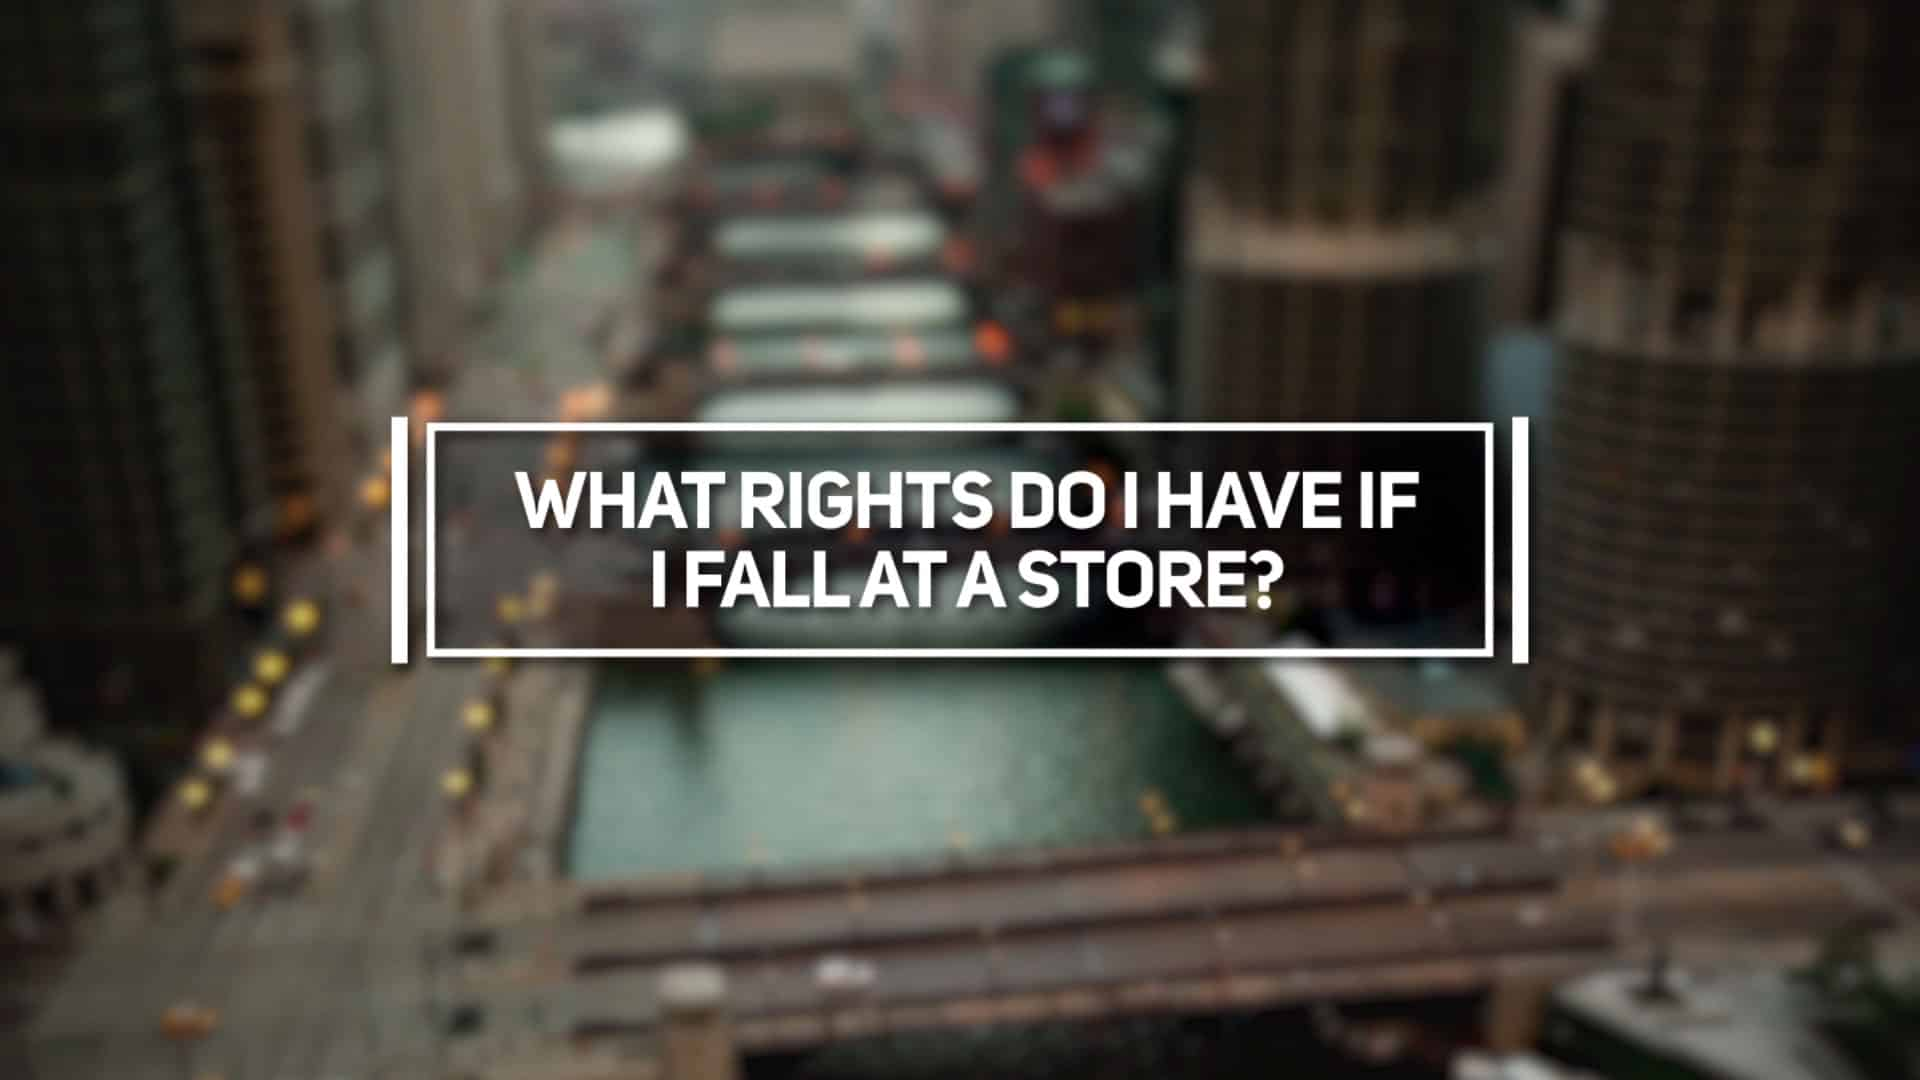 What Rights Do I Have if I Fall at a Store